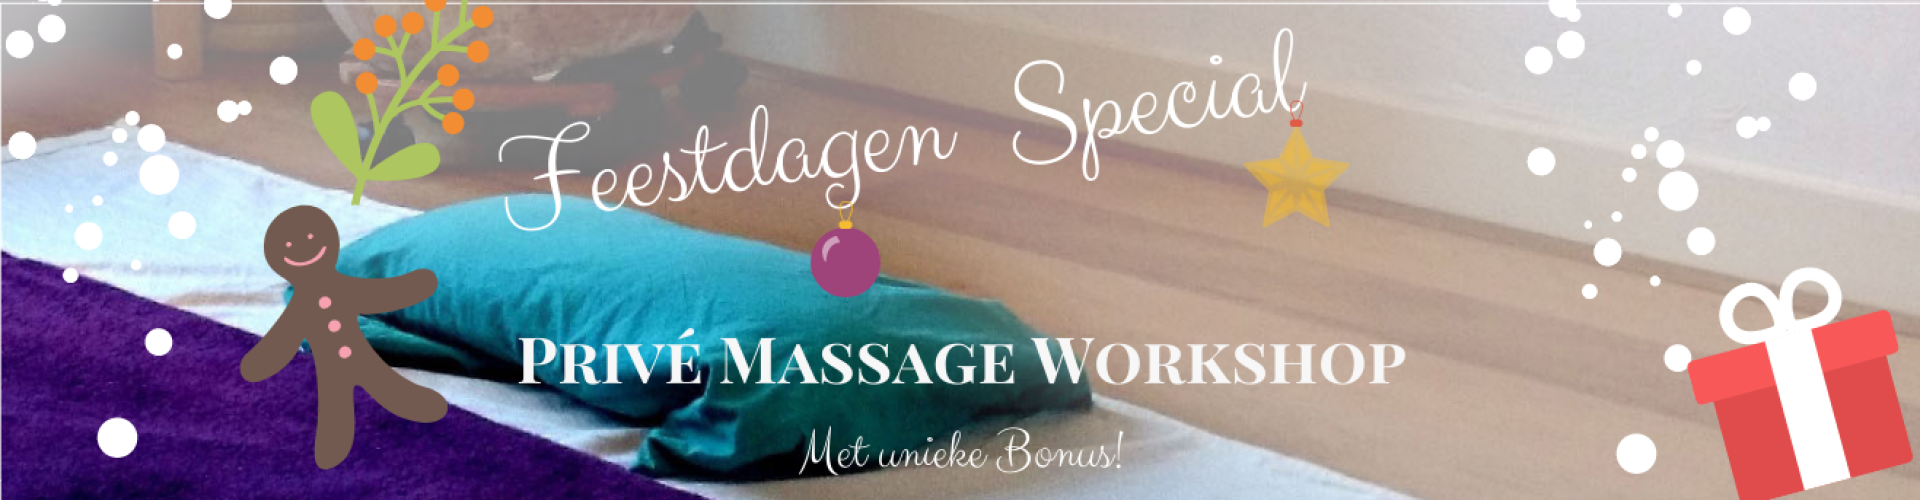 prive-massage-workshop